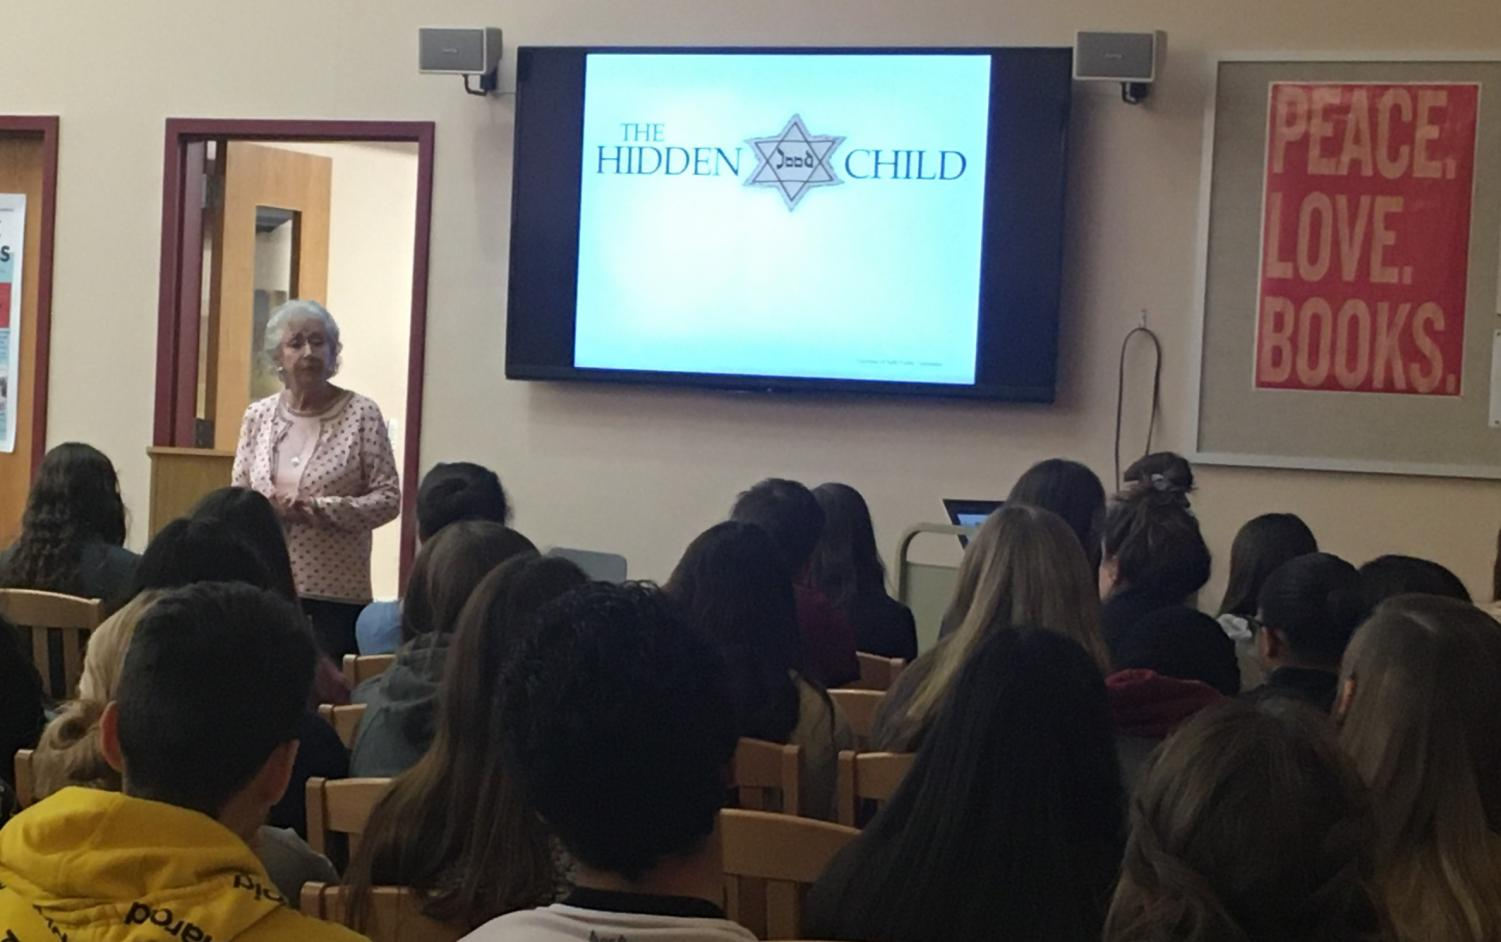 Maud Dahme, a survivor of the Holocaust, shares her story with students at a showcase in the library Nov. 11. (Photo by Stephanie Dunlap)